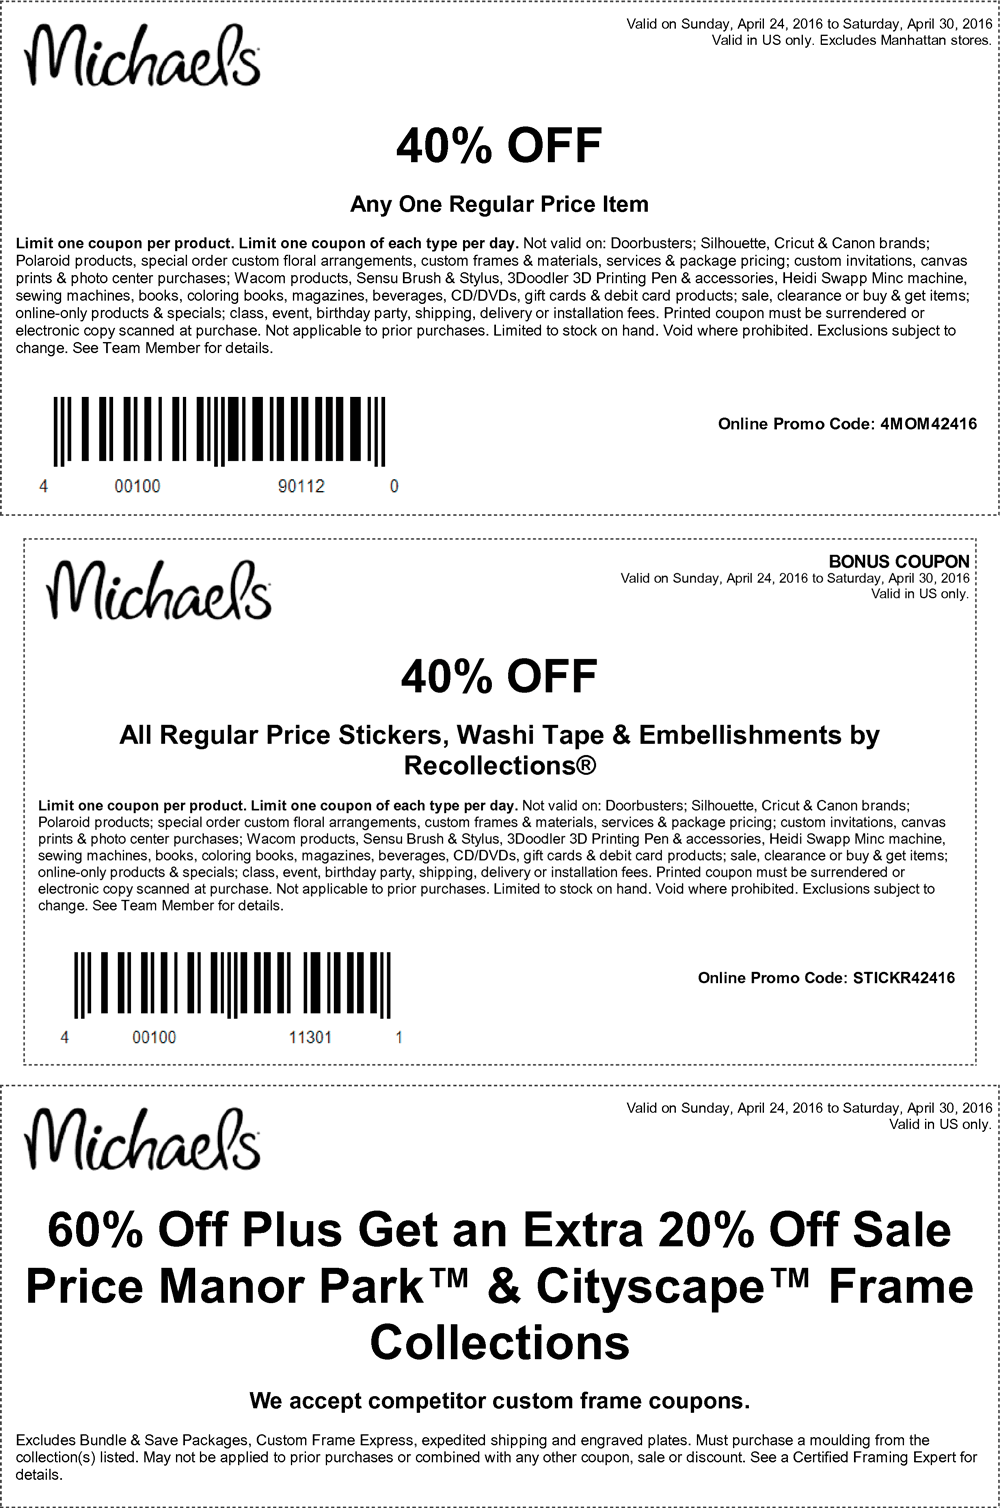 Michaels Coupon April 2017 40% off a single item at Michaels, or online via promo code 4MOM42416